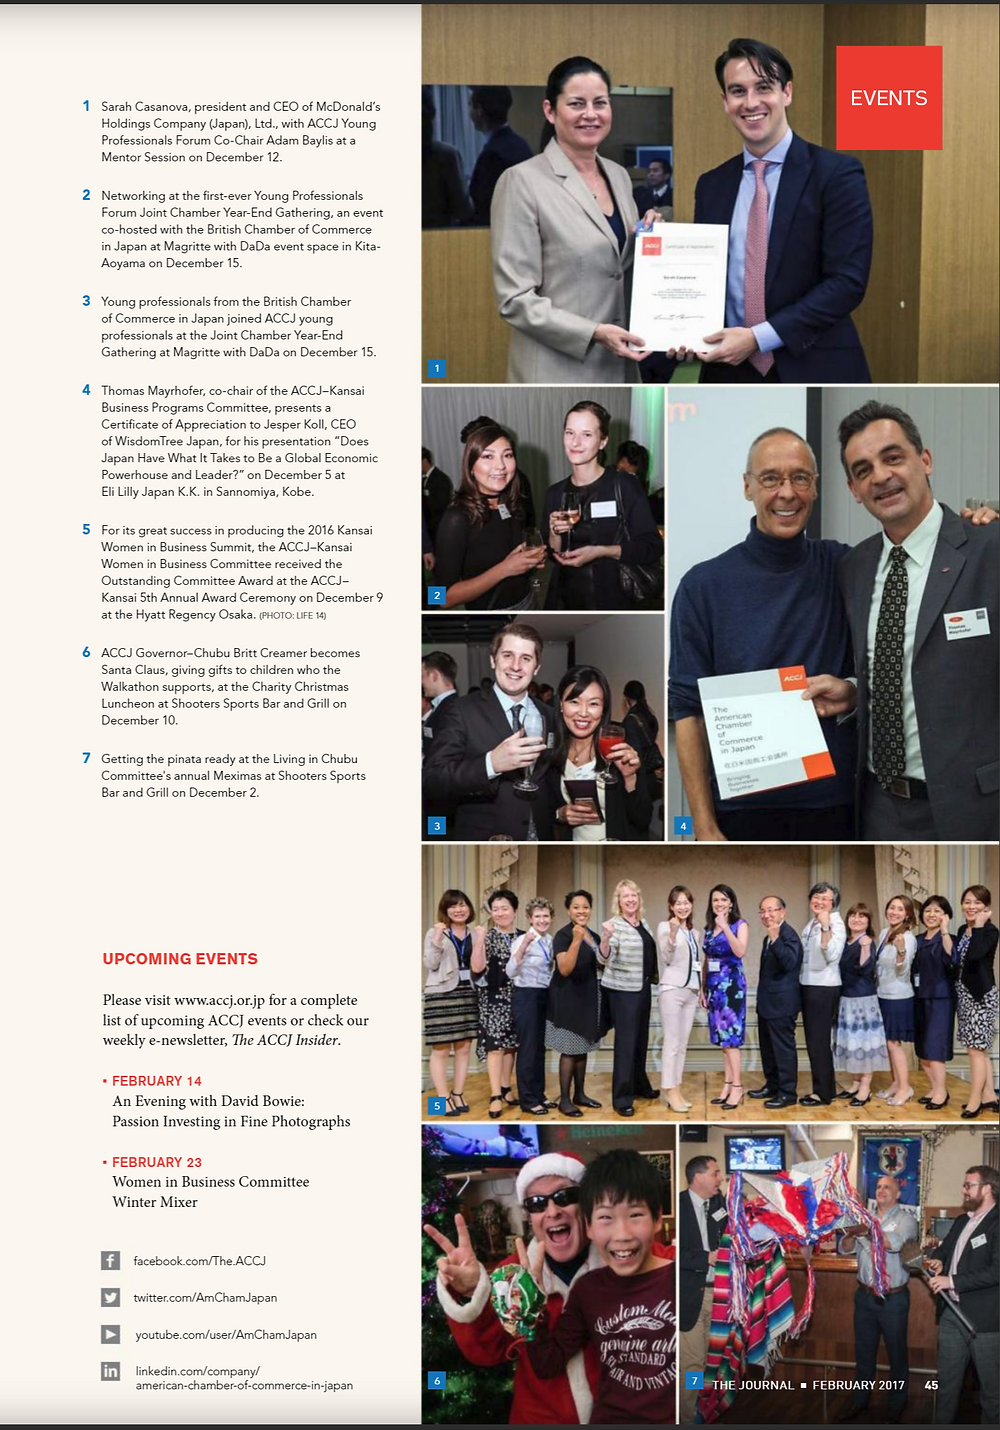 ACCJ the Journal February 2017 - Page 45  ACCJ Kansai Women in Business Summit 2016 -   Driving Business through Organizational Culture Change - (Kansai Event)   Date: Wednesday, June 29, 2016 Time: 1:00pm - 8:00pm Venue: Ritz-Carlton Osaka   Hosting Committee(s): Kansai - Women in Business  Event Overview: ACCJ Kansai is pleased to invite you to the Kansai Women in Business (WIB) Summit - Driving Diversity through Organizational Culture Change. Join us at the Ritz-Carlton Osaka on June 29th for a half day of inspiring speakers, panel discussions and workshops on the crucial topic of the business case for changing organizational culture to support diversity and inclusion. This event is in response to our successful inaugural summit last year, as well as the Nagoya and Tokyo summits (attended by Prime Minister Shinzo Abe and U.S. Ambassador to Japan Caroline Kennedy), and follows the call of Prime Minister Abe who has made gender diversity a top issue.    The event will highlight thoughts from leaders across diverse sectors, and anyone from senior executives to interested community members is welcome to attend. Men are especially encouraged to participate, as the task of creating an inclusive organizational culture belongs to us all. Be a part of this engaging forum to discuss solutions required to strengthen gender equality, diversity & inclusion, and positively impact the Kansai region. As space is limited, please register ASAP. Mark your calendars and join in the momentum of change!    http://www.accj.or.jp/accj-events/accj-kansai-women-in-business-summit-2016-driving-business-through-organizational-culture-change-kansai-event.html?lang=en    The ACCJ - 在日米国商工会議所  http://www.accj.or.jp